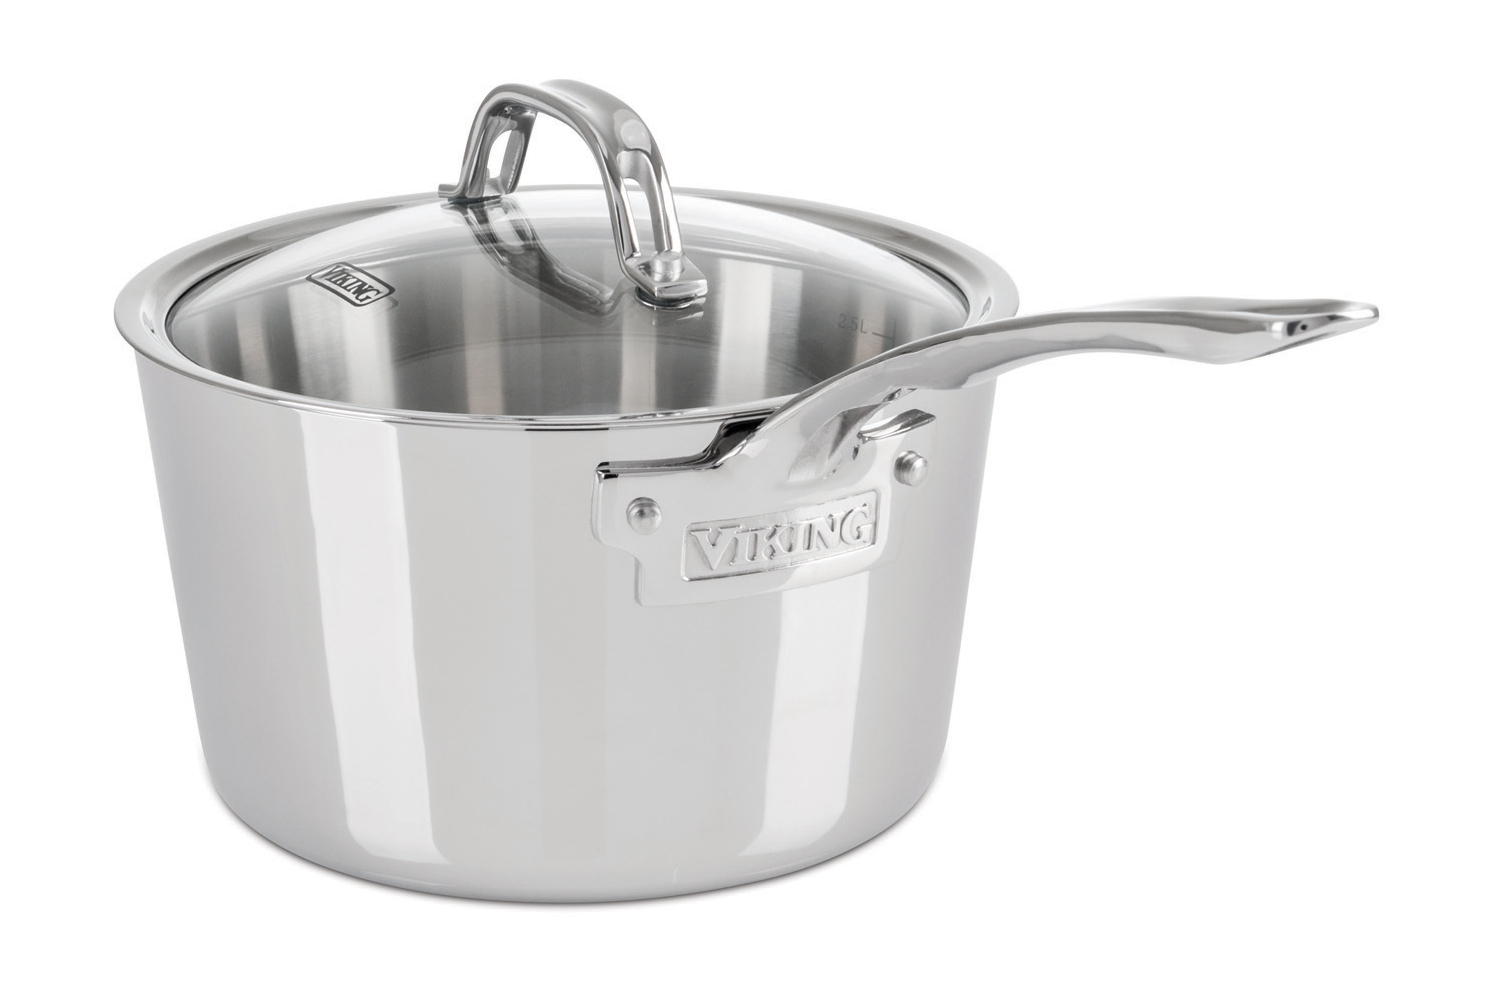 Viking Contemporary 3 Ply Stainless Steel Sauce Pans